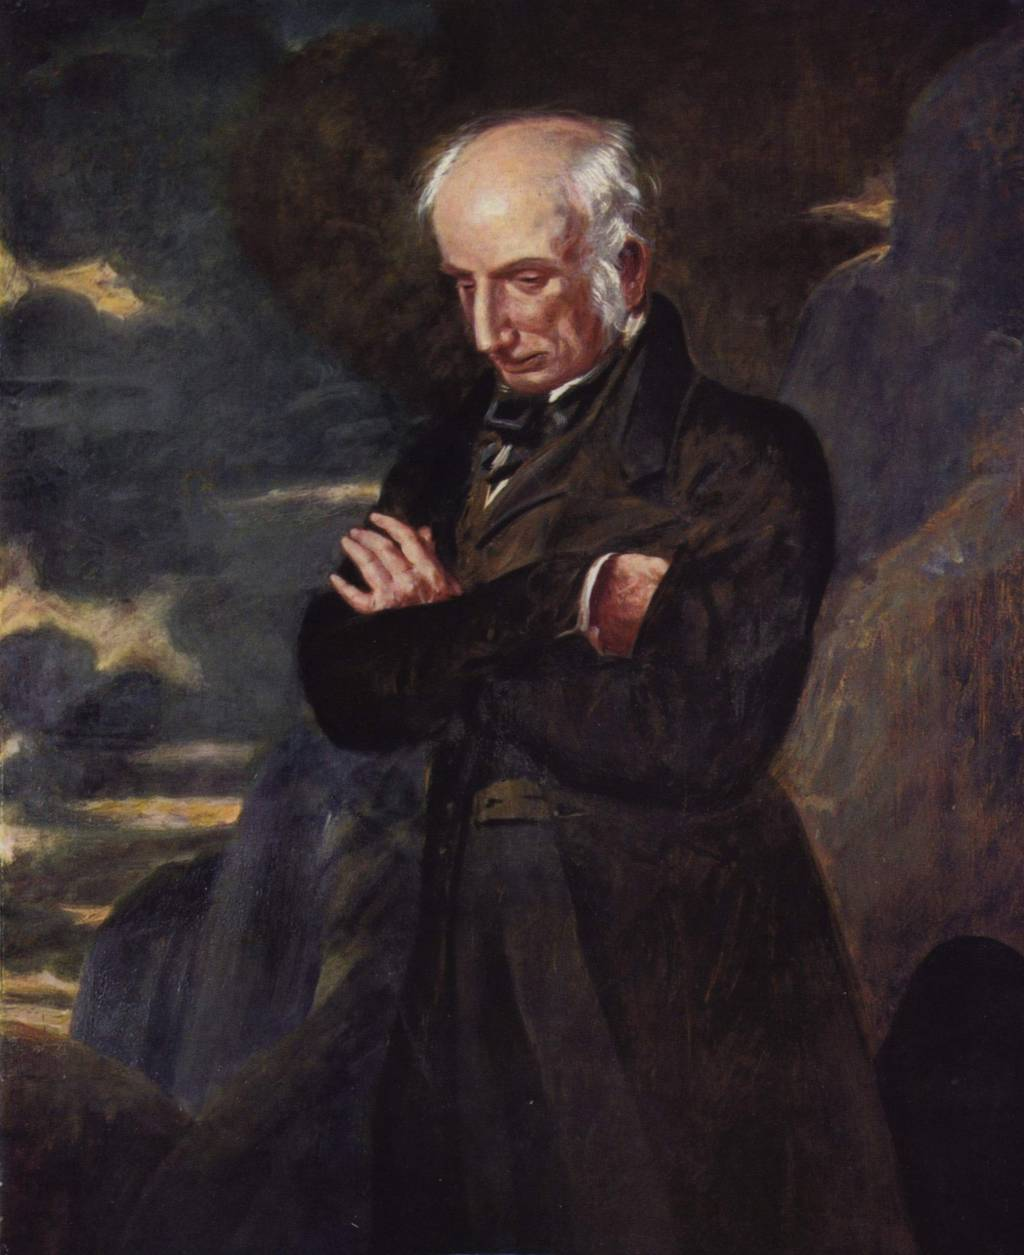 Stanza-wise Summary of The Tables Turned by William Wordsworth